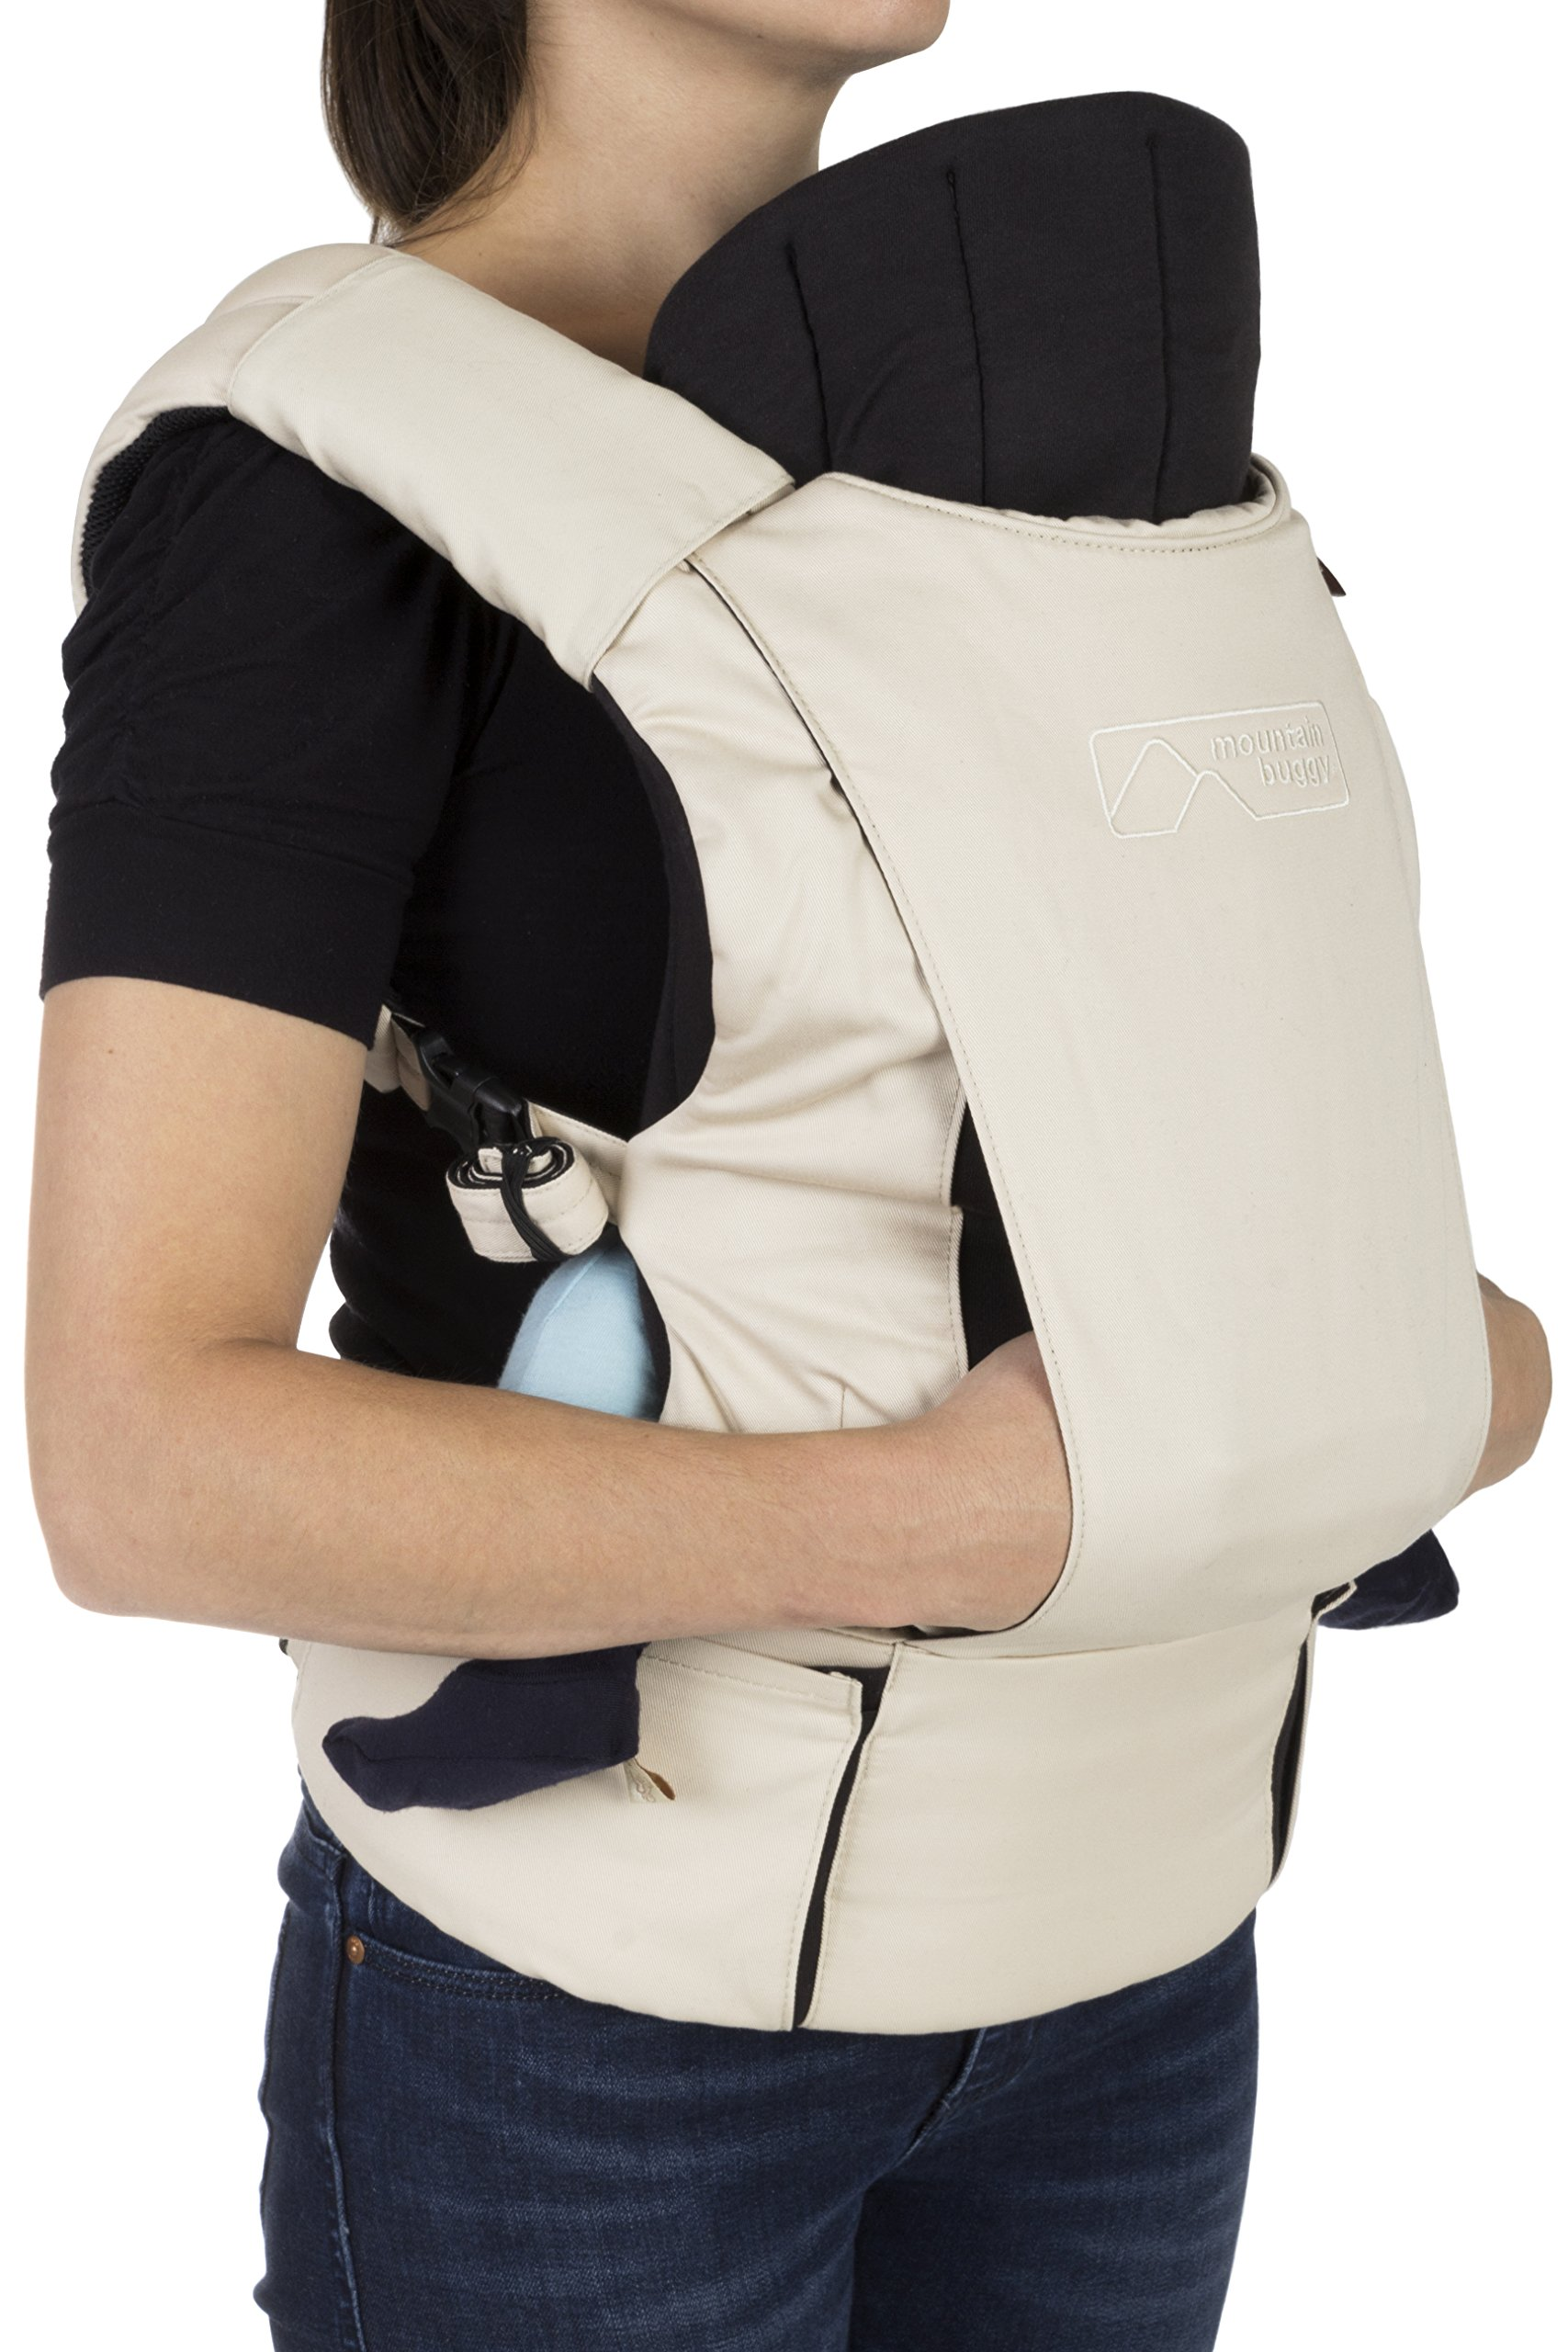 Mountain Buggy Juno Carrier - Sand Mountain Buggy Mountain Buggy Juno Carrier Multi functional carrier that transitions seamlessly from newborn to toddler Providing hands free: hands through connection; juno has been designed to deliver the very best ergonomics in all carrying modes: for both you and your child. 4